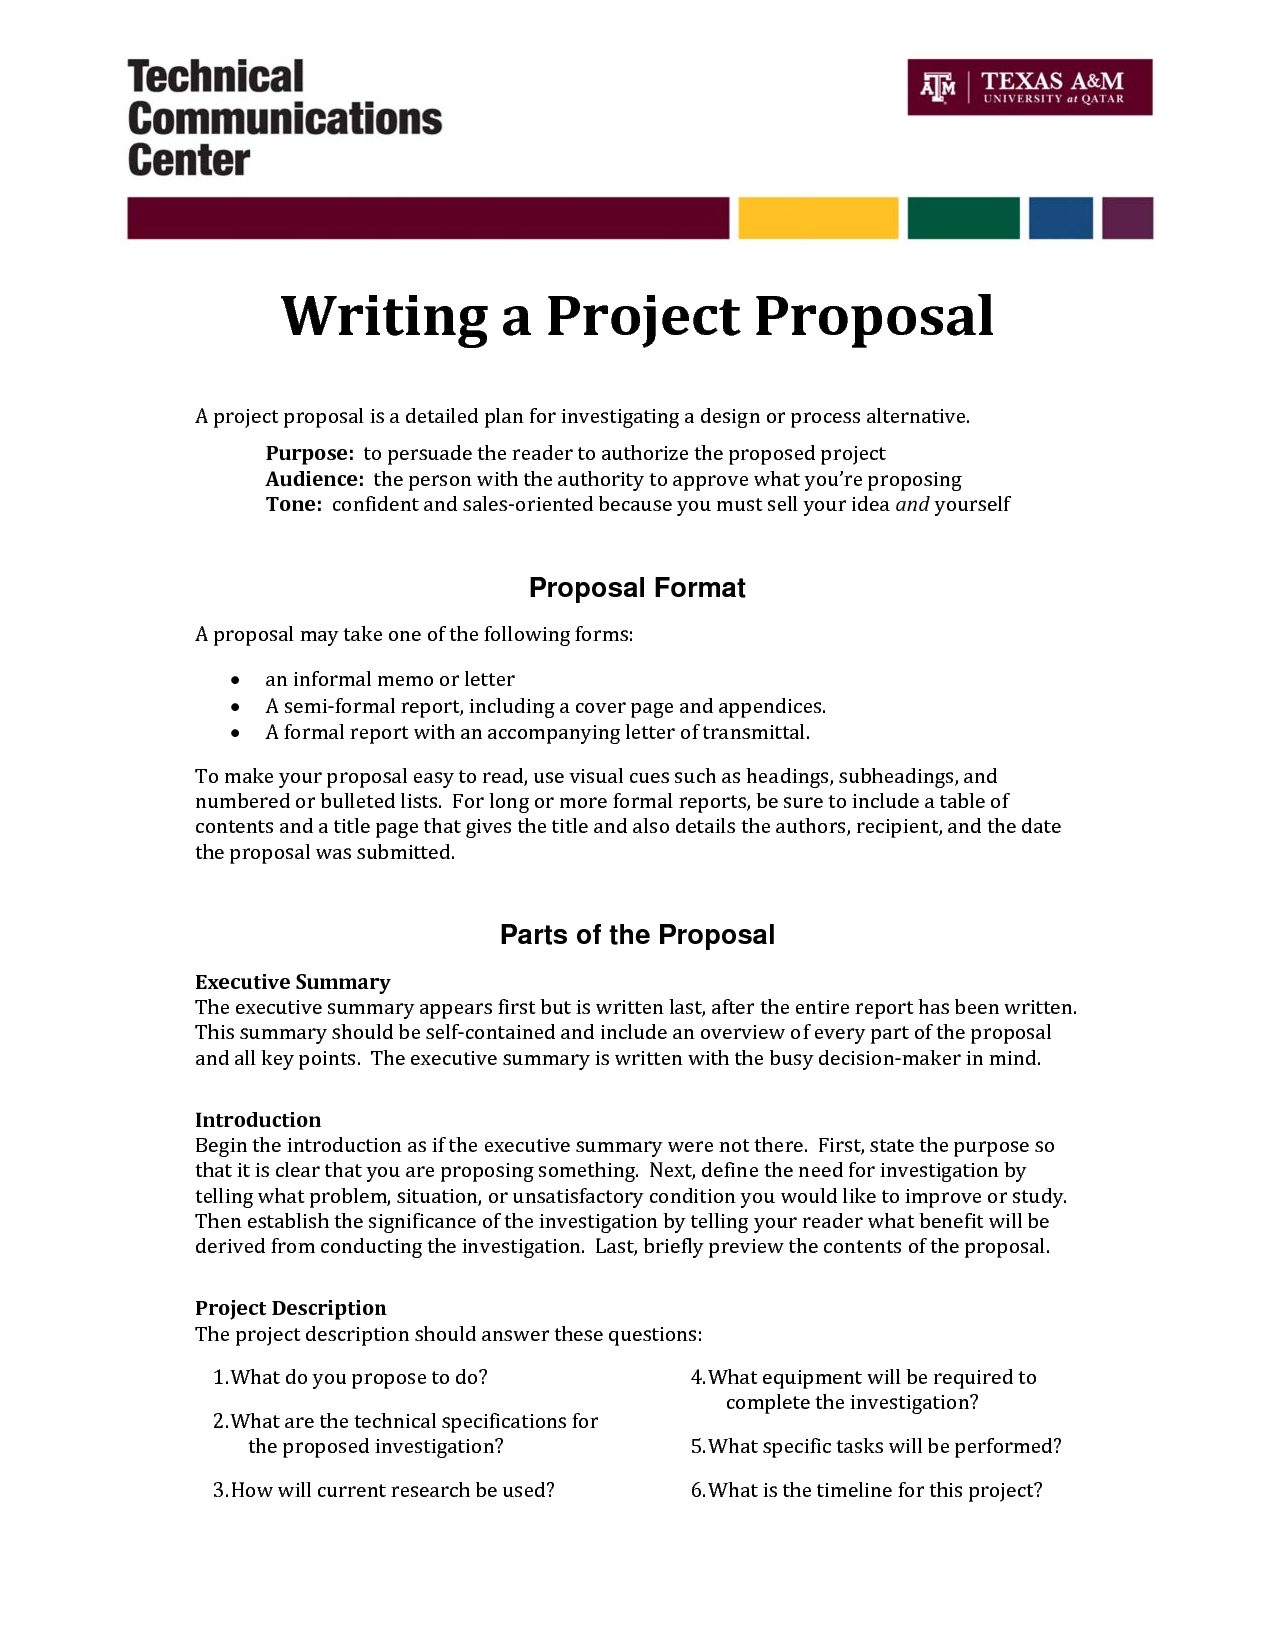 Informal proposal letter example writing a project proposal a informal proposal letter example writing a project proposal a project proposal is a detailed accmission Image collections